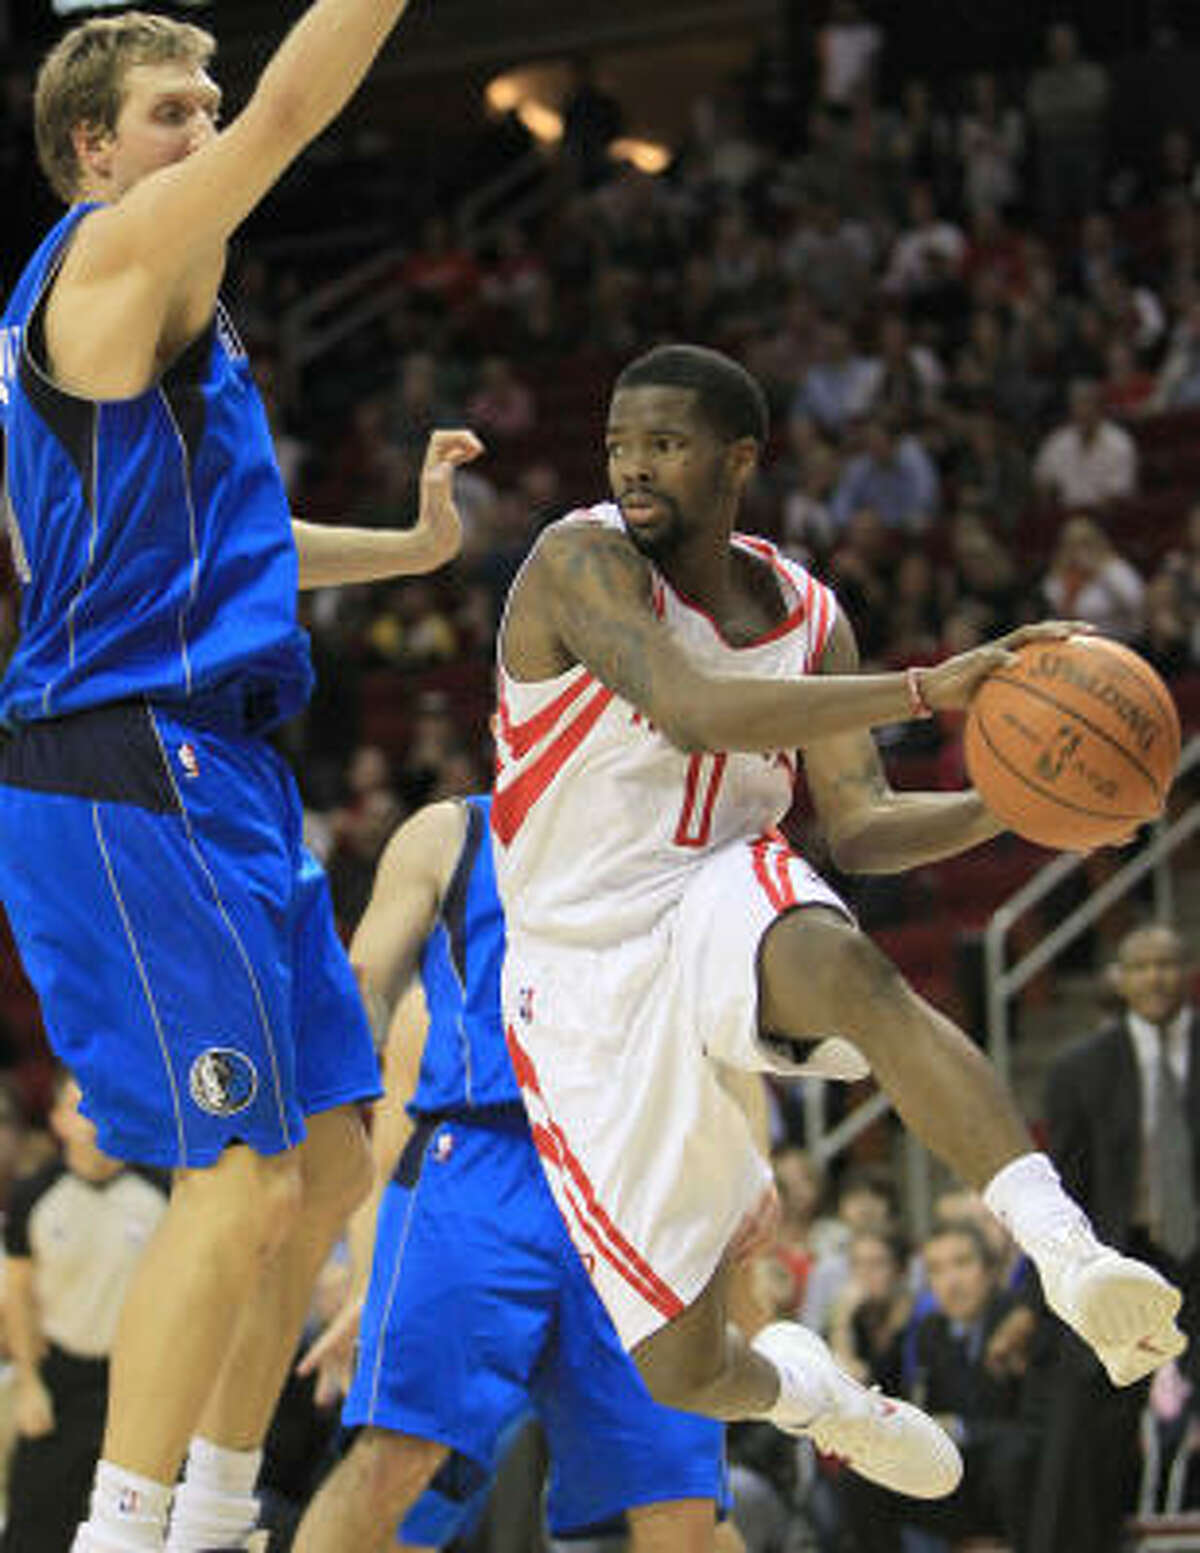 Rockets trade G Aaron Brooks to Suns Brooks, right, was sent to the Suns in exchange for point guard Goran Dragic and a first-round pick that won't come into play until at least 2013.